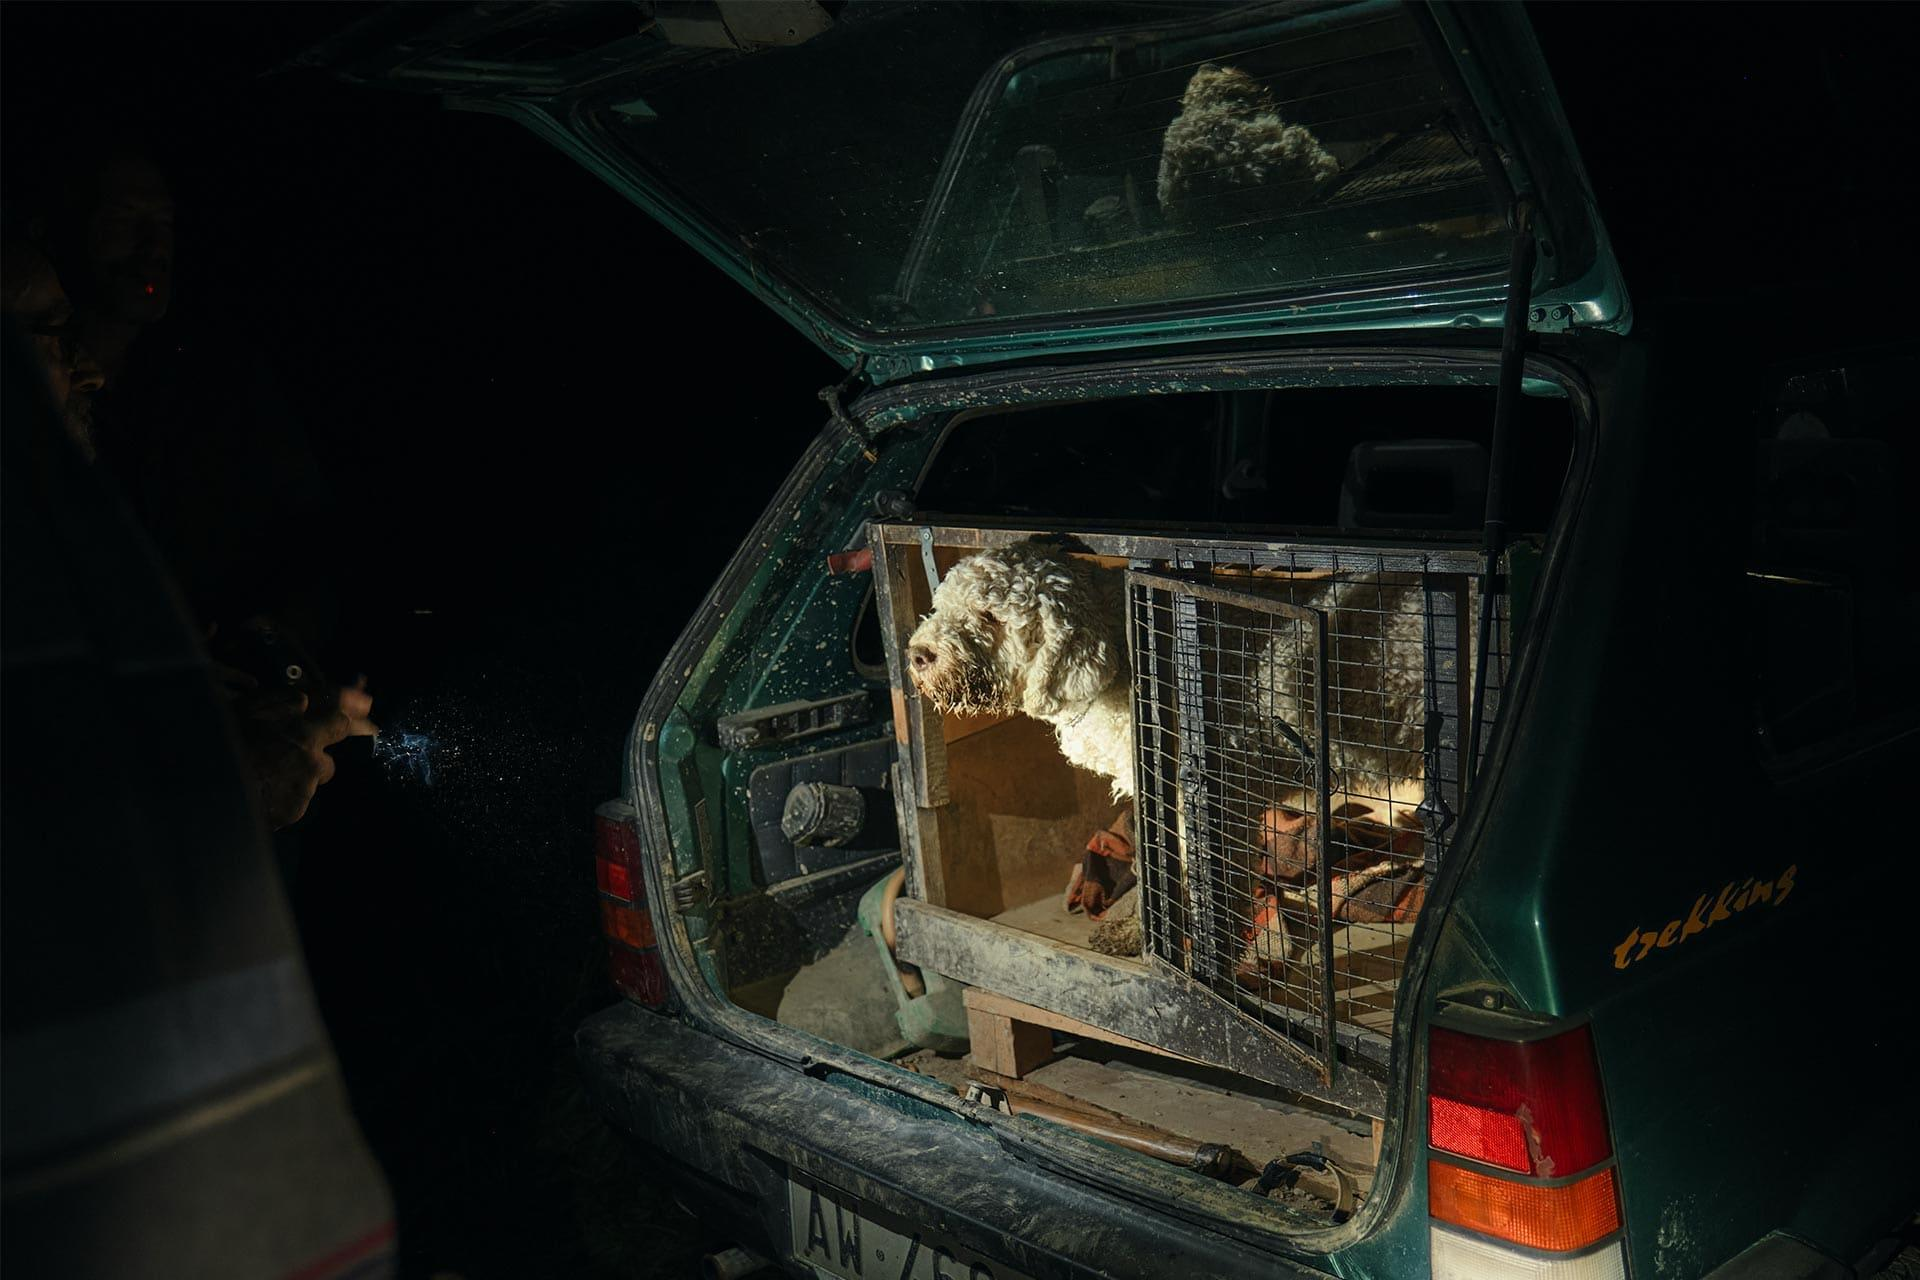 A dog in the car of a truffle hunter